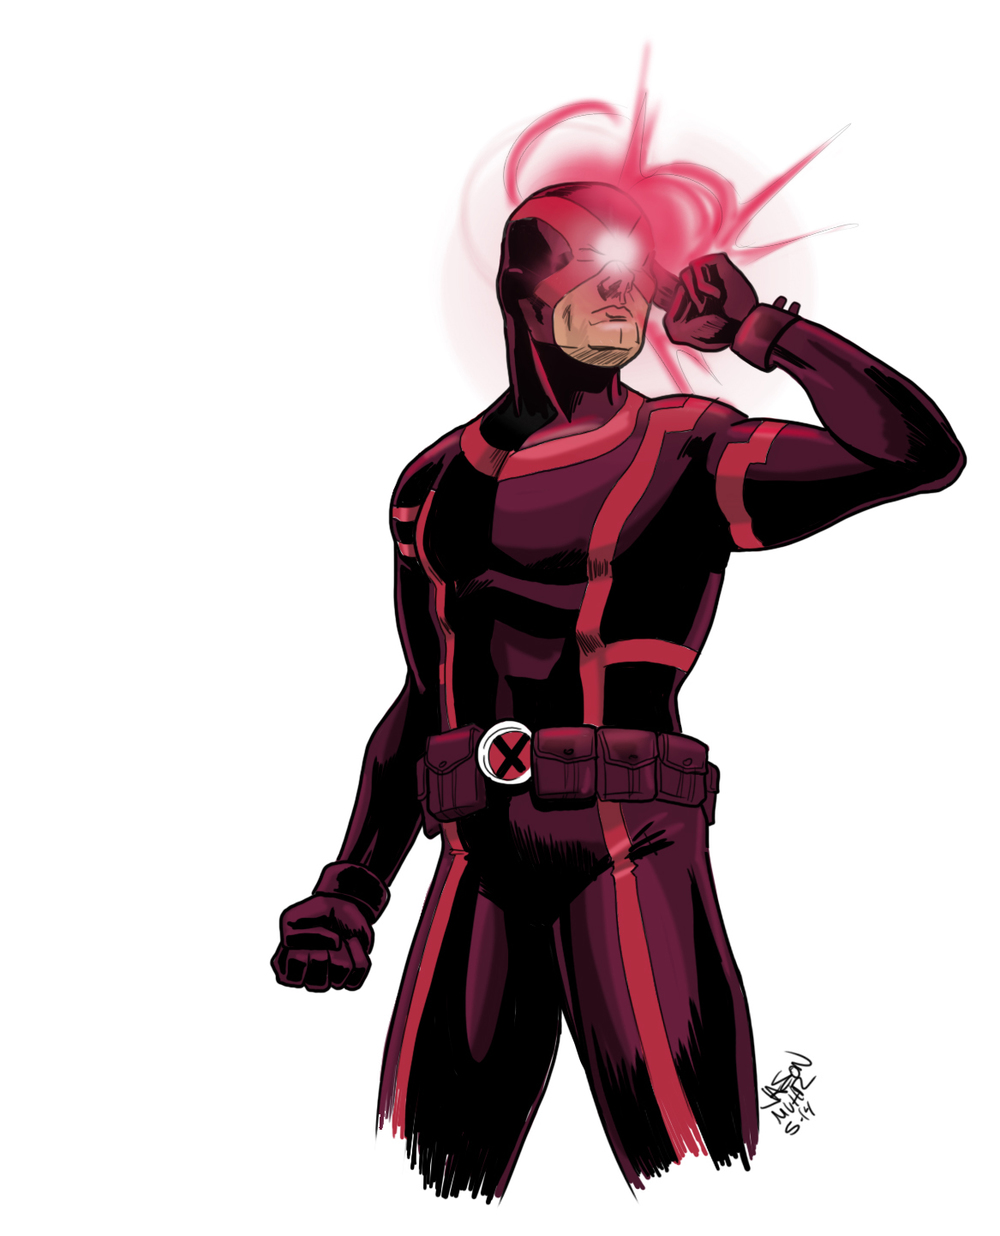 cyclops_jason_muhr.jpg